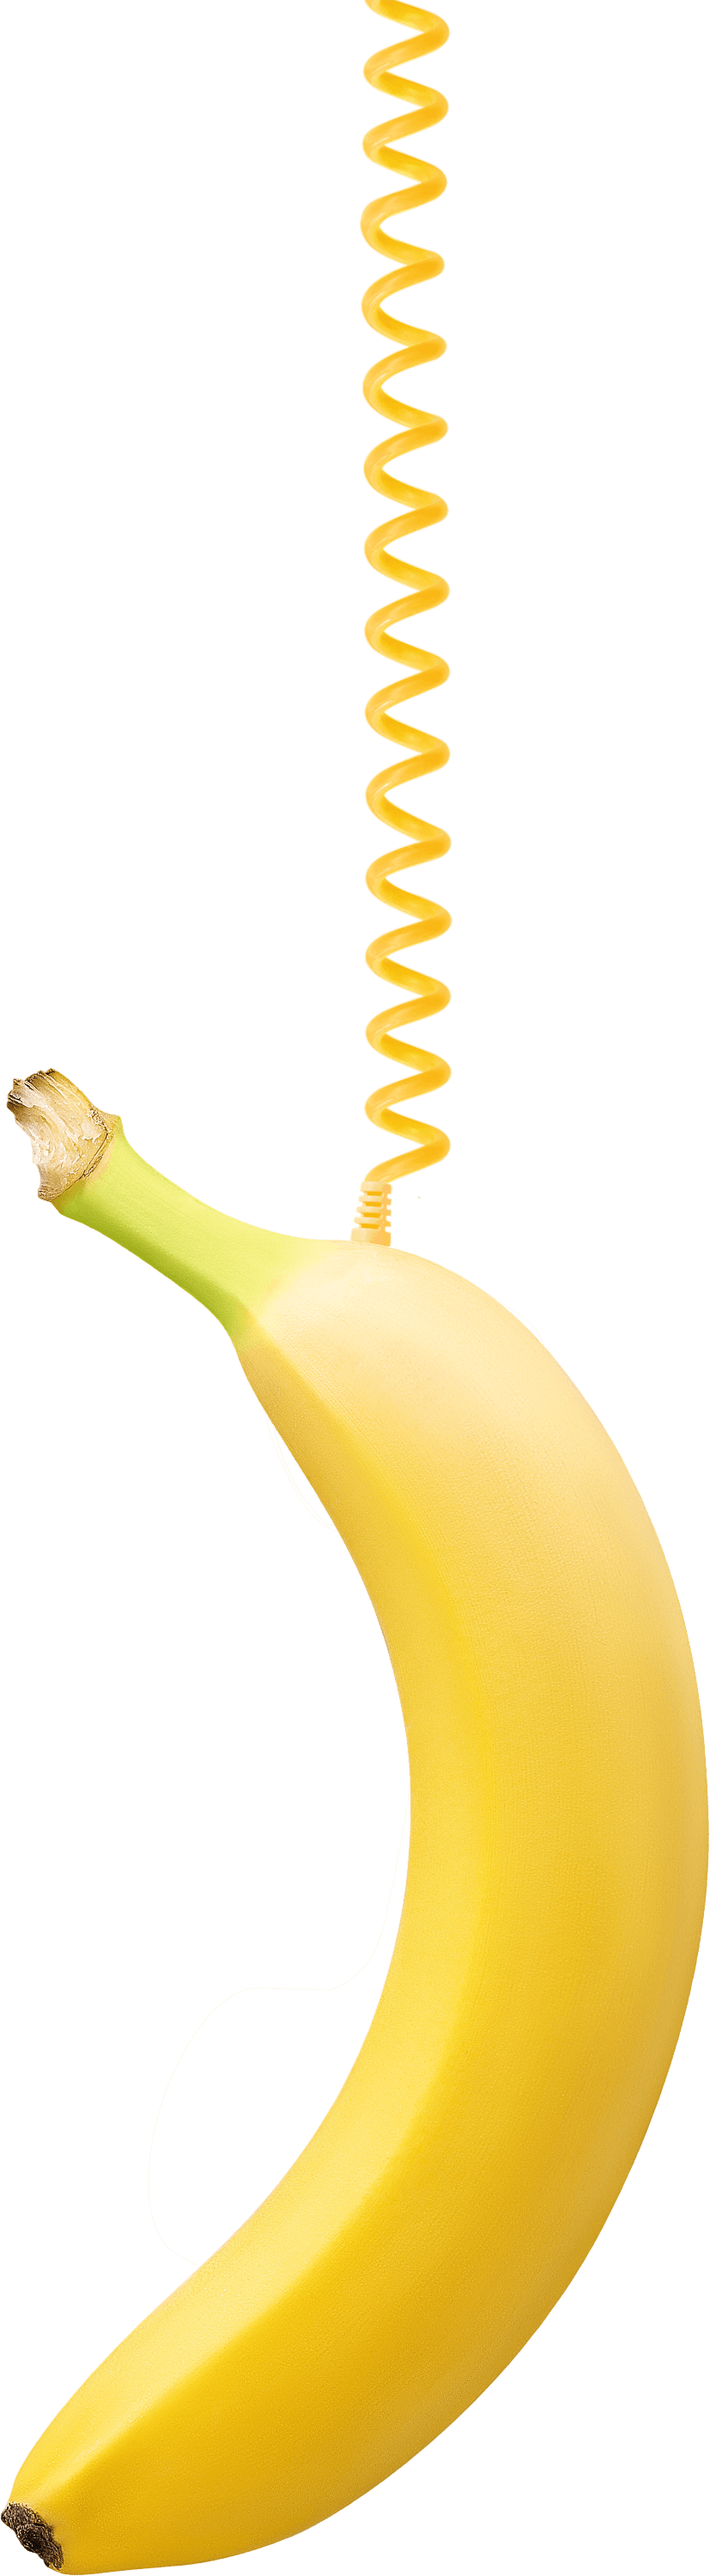 A banana phone, give us a call today!